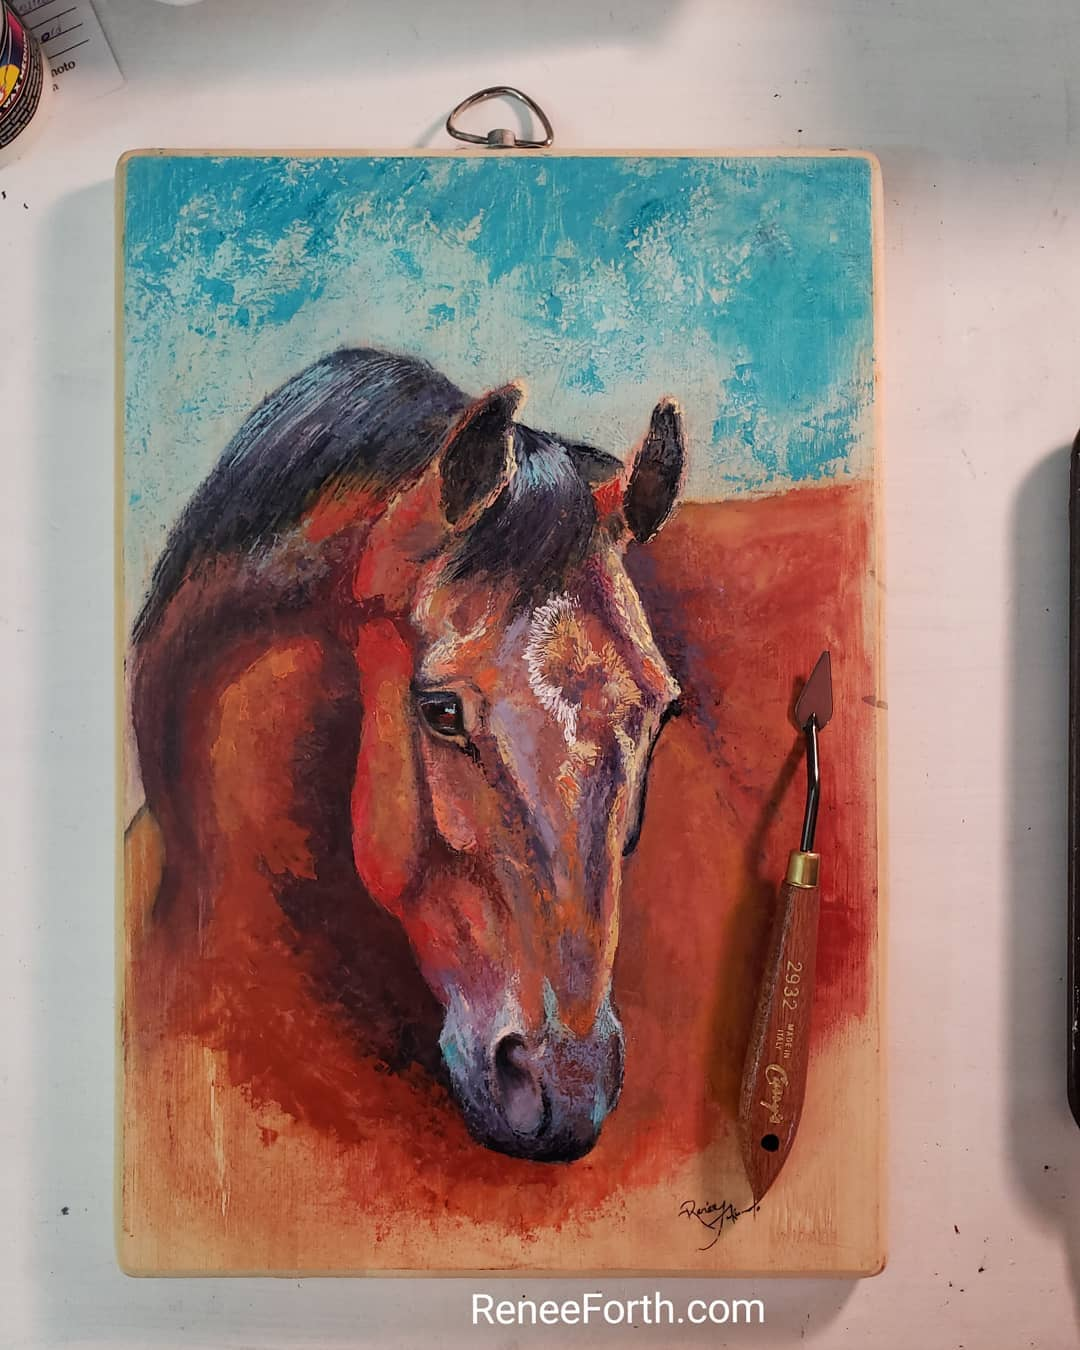 Bay horse portrait in oils, soft pastel and cold wax on bamboo cutting board Copyright artist Renee Forth-Fukumoto